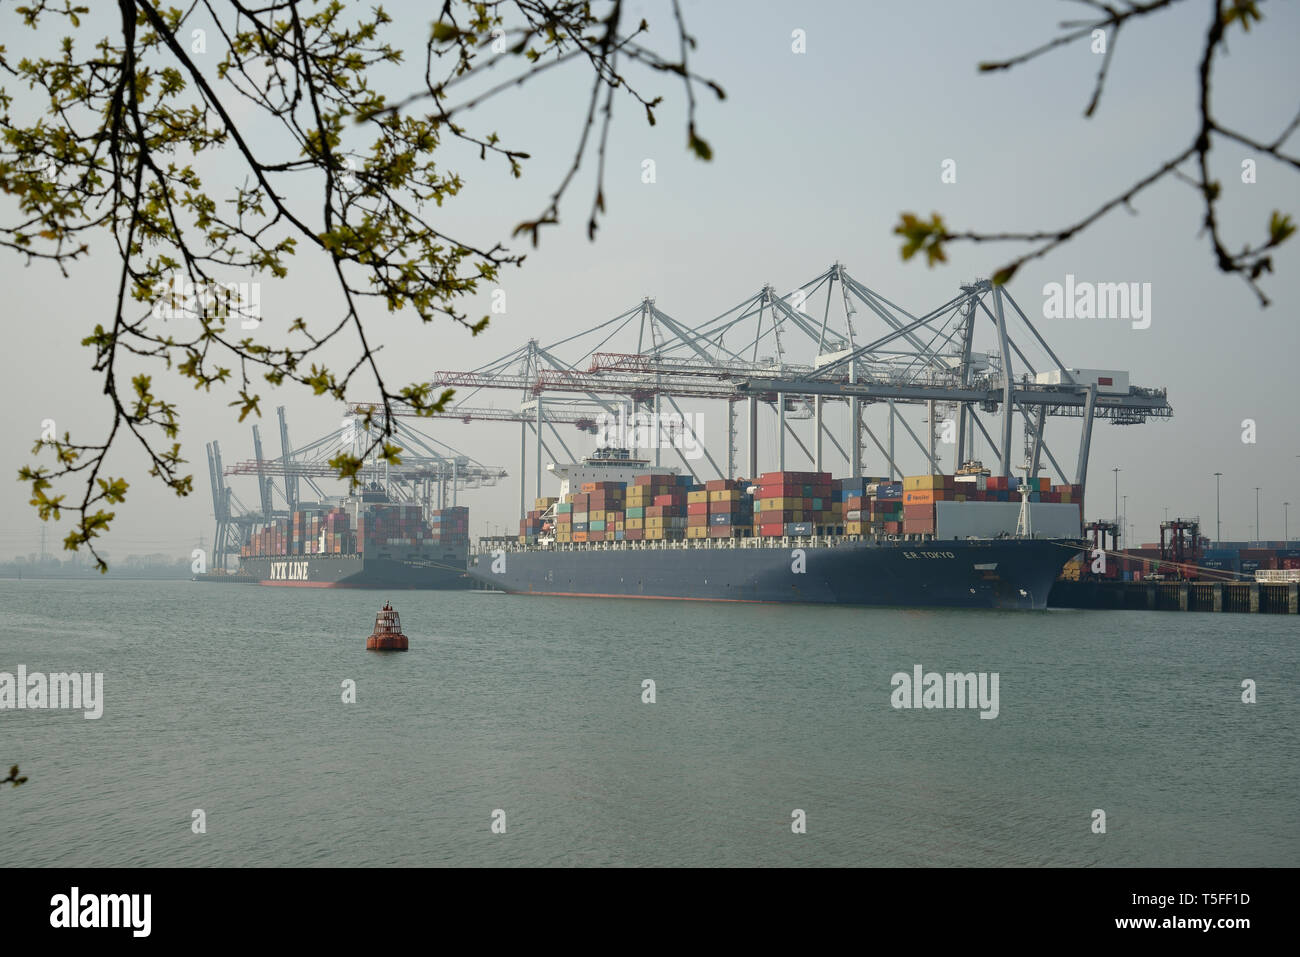 Container ship at Southampton Dock, Hampshire, England, United Kingdom. - Stock Image